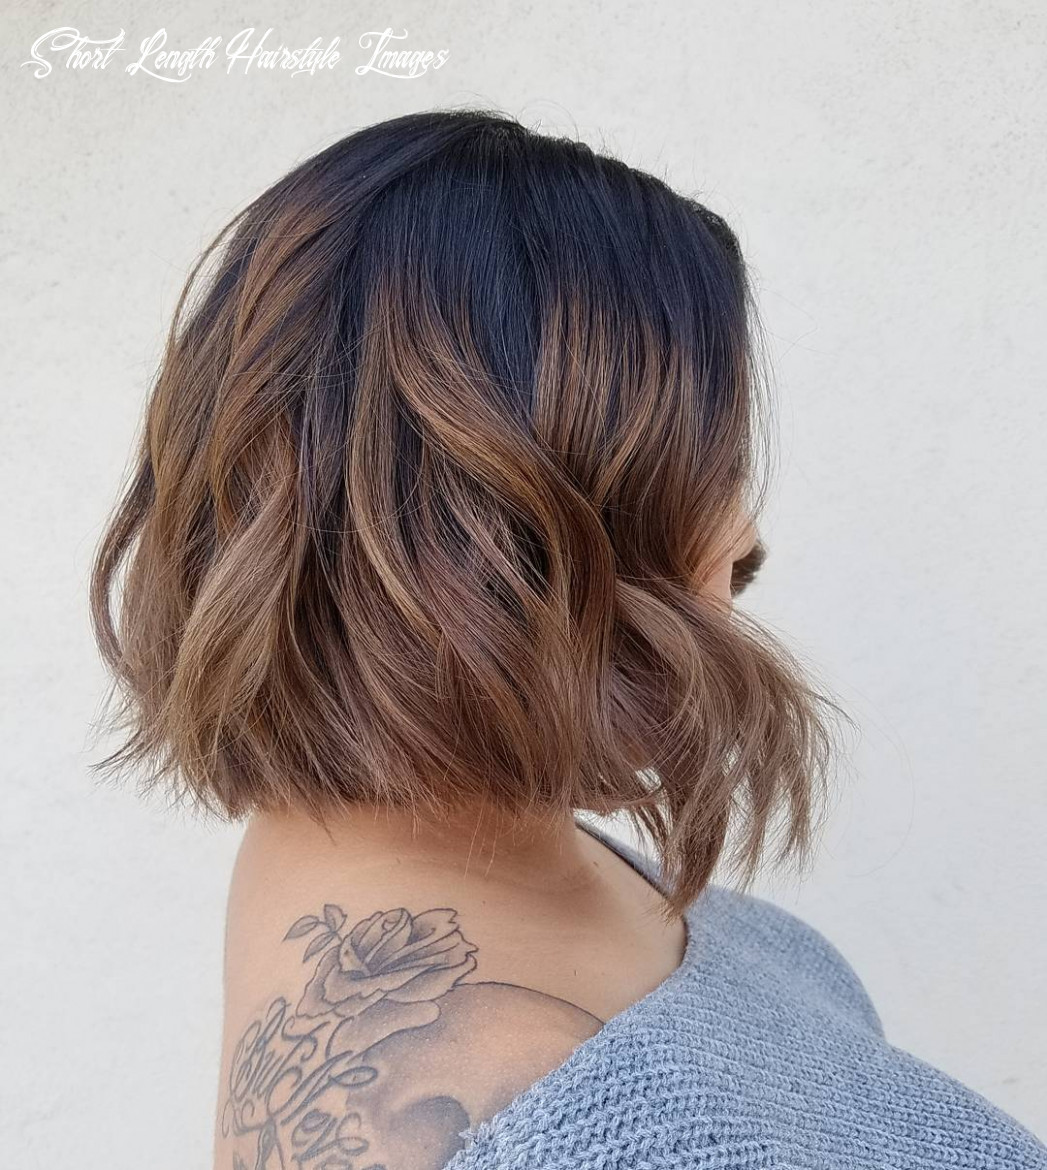 11 hottest short hairstyles for 11: best short haircuts for